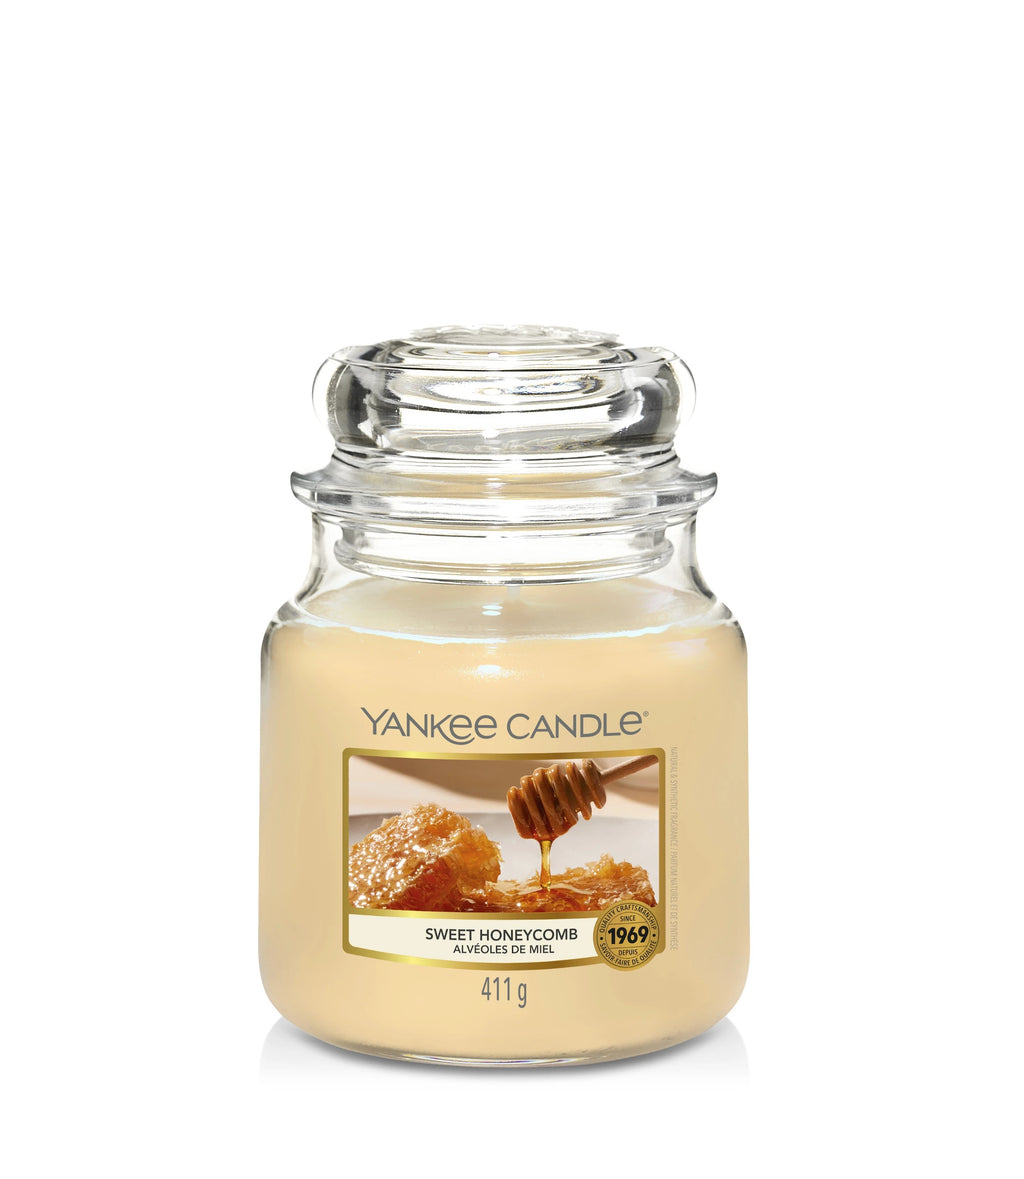 SWEET HONEYCOMB -Yankee Candle- Giara Media